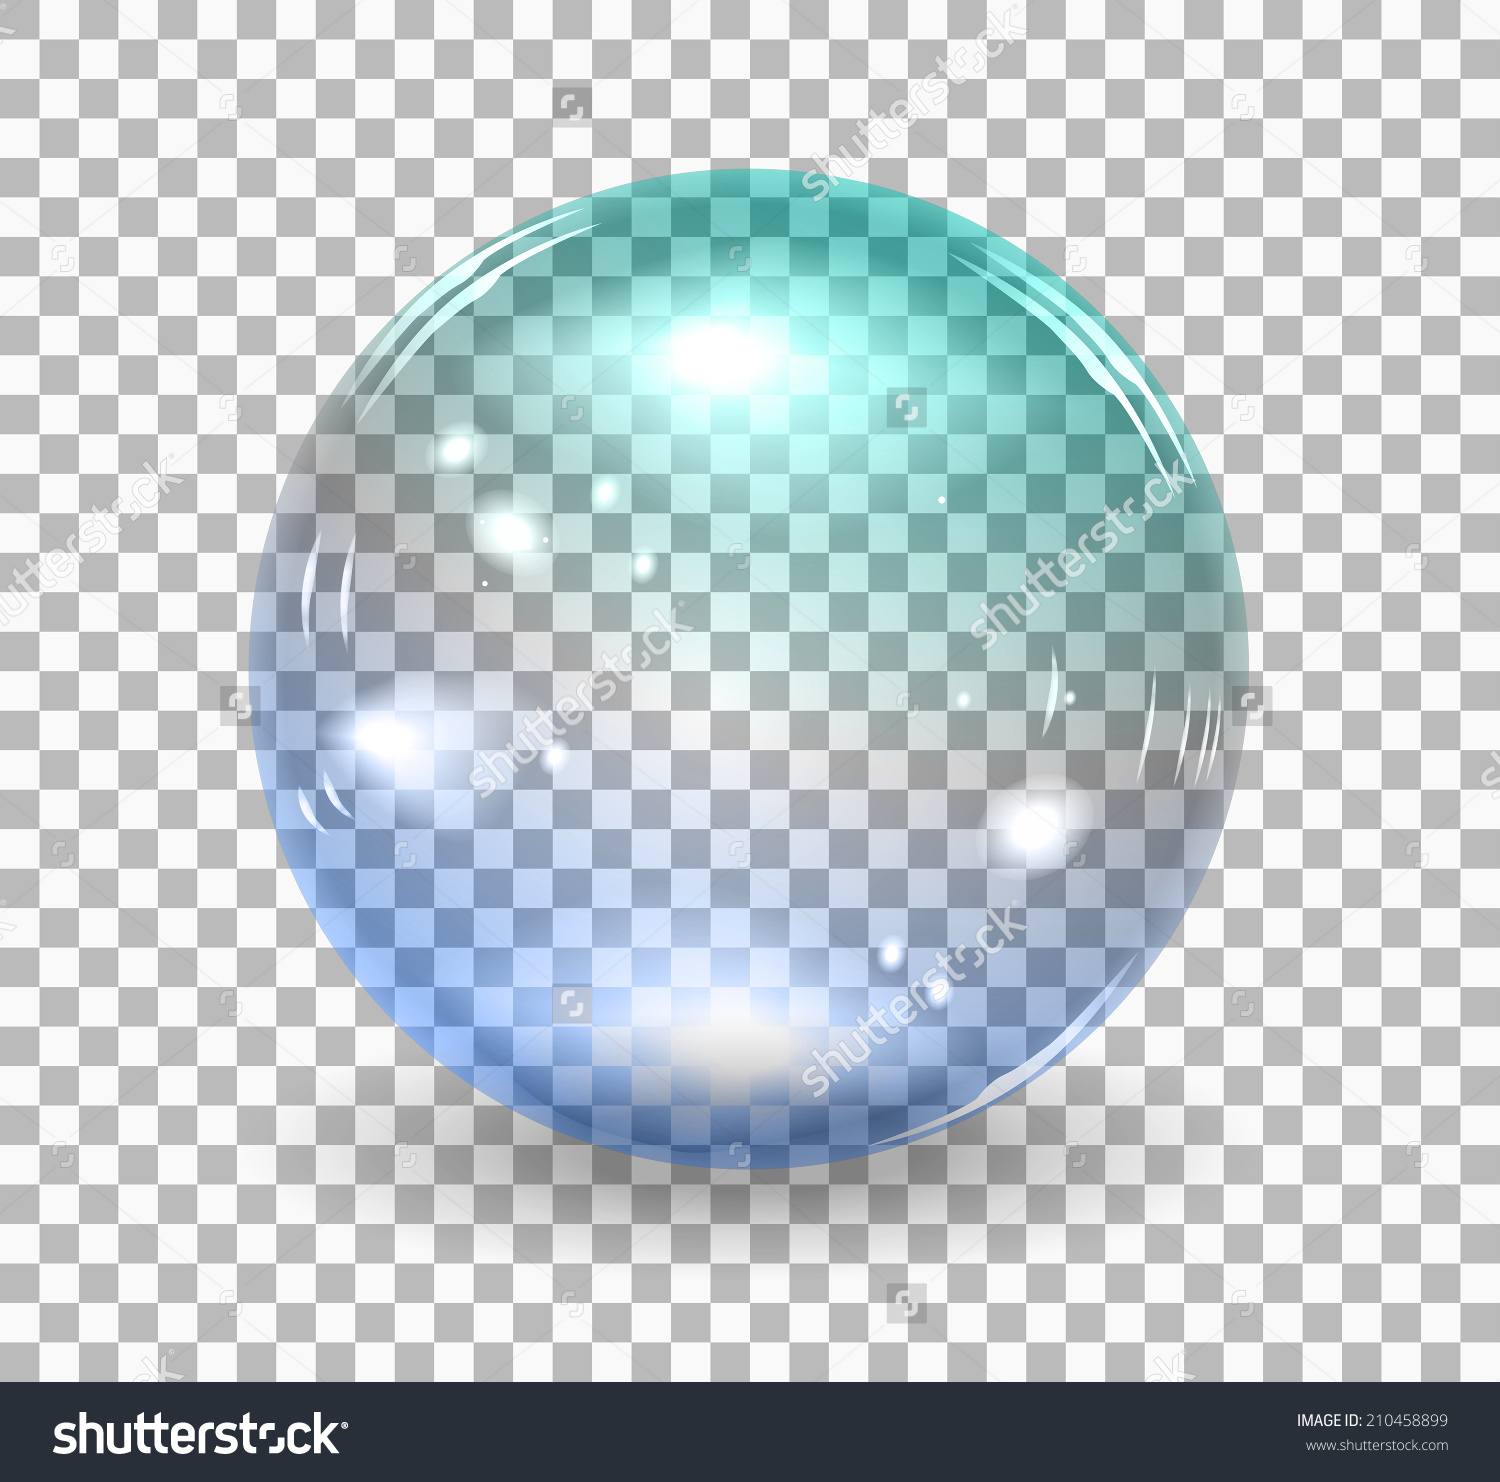 Bubble clipart transparent background Clip 3D No Background No